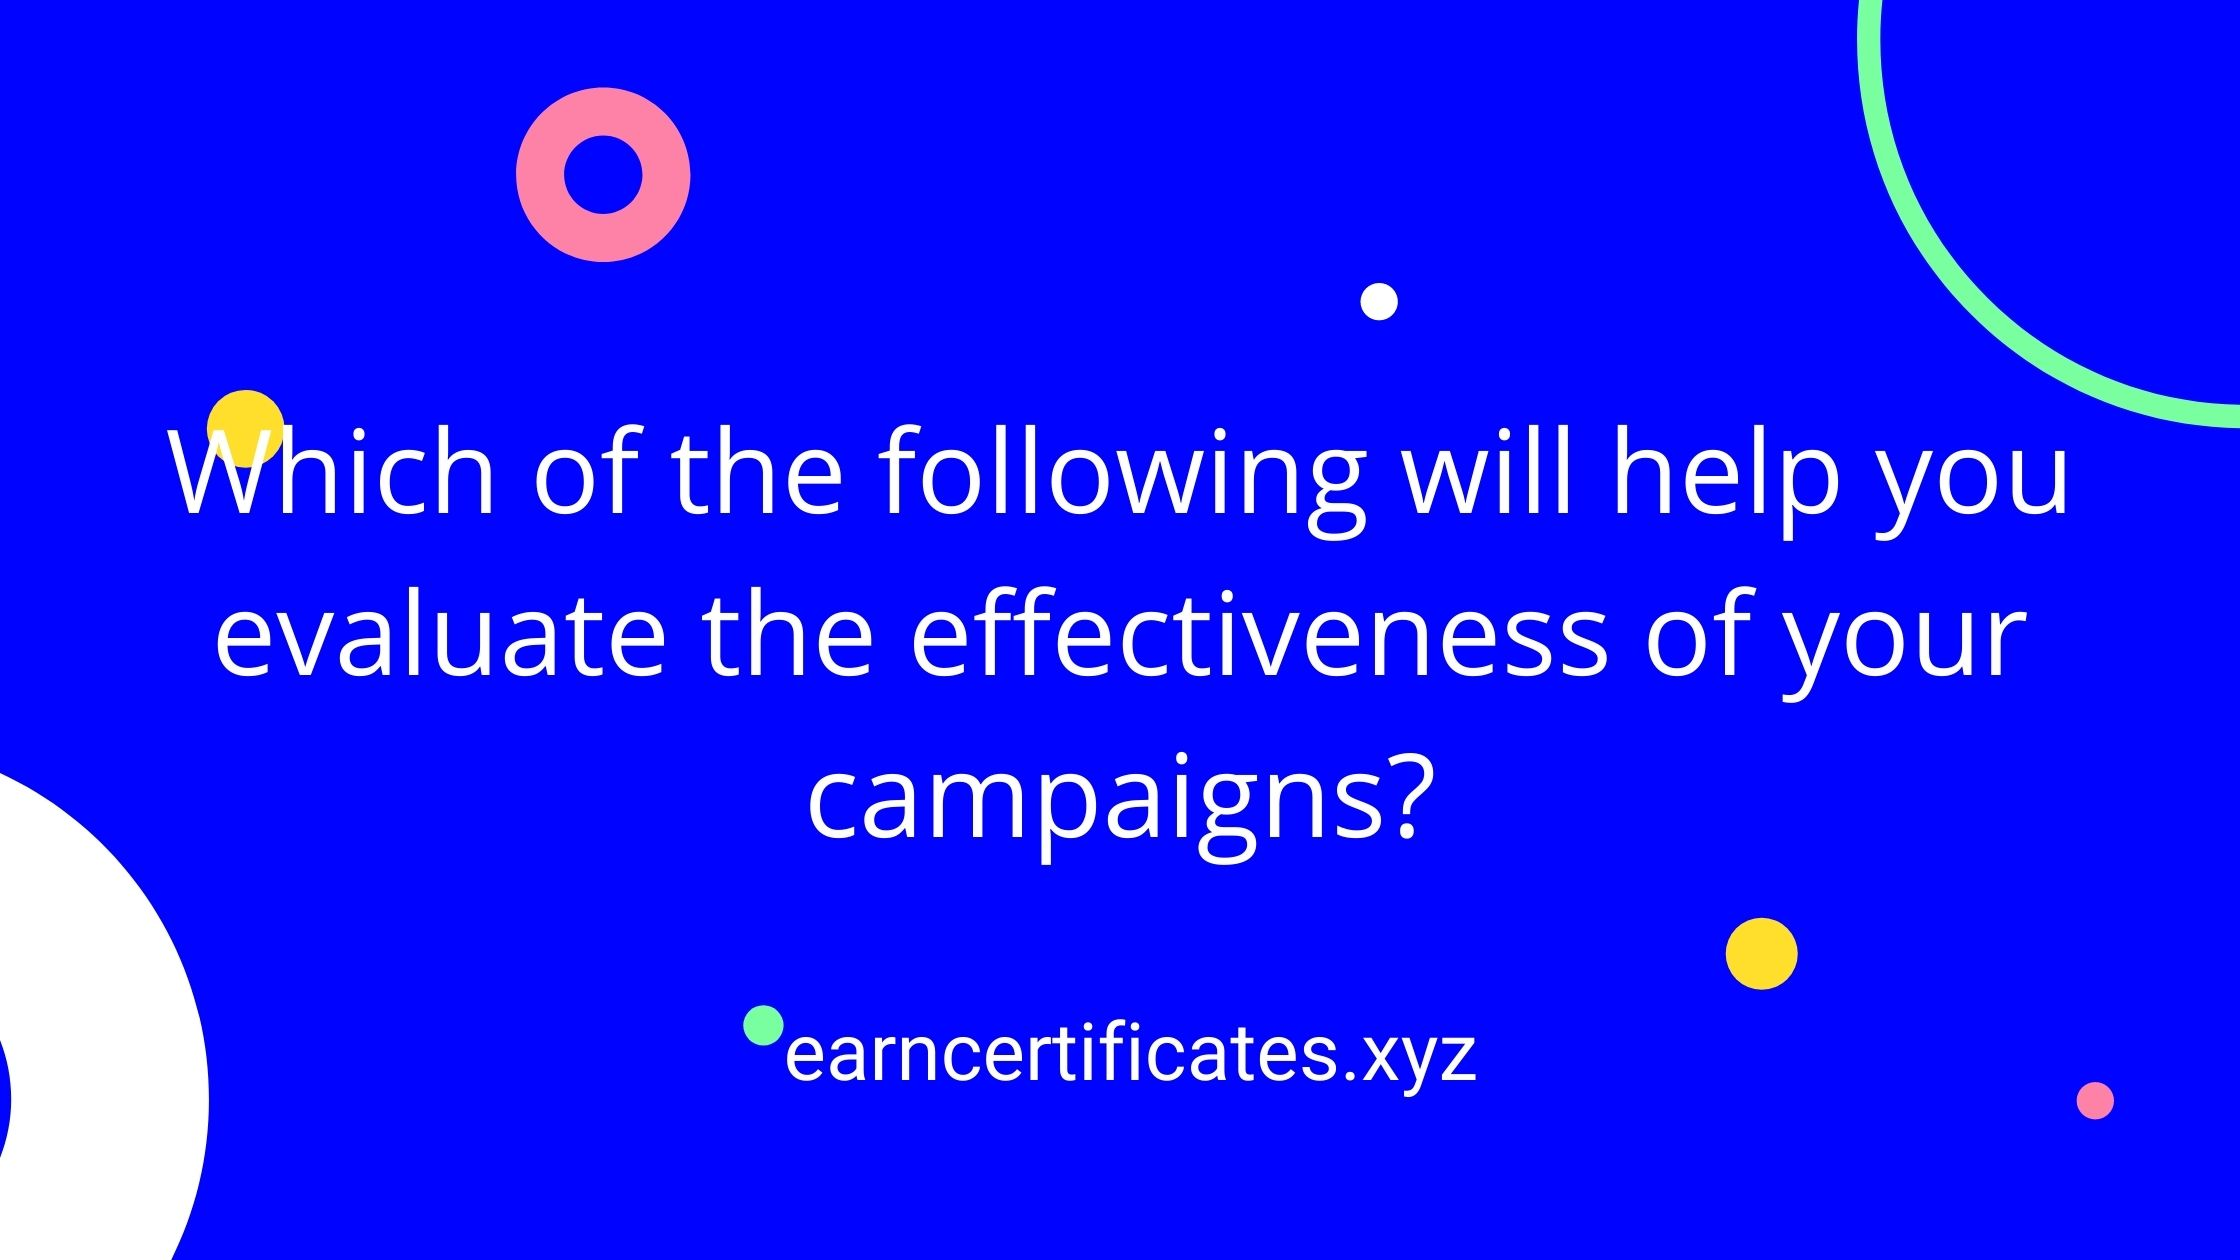 Which of the following will help you evaluate the effectiveness of your campaigns?